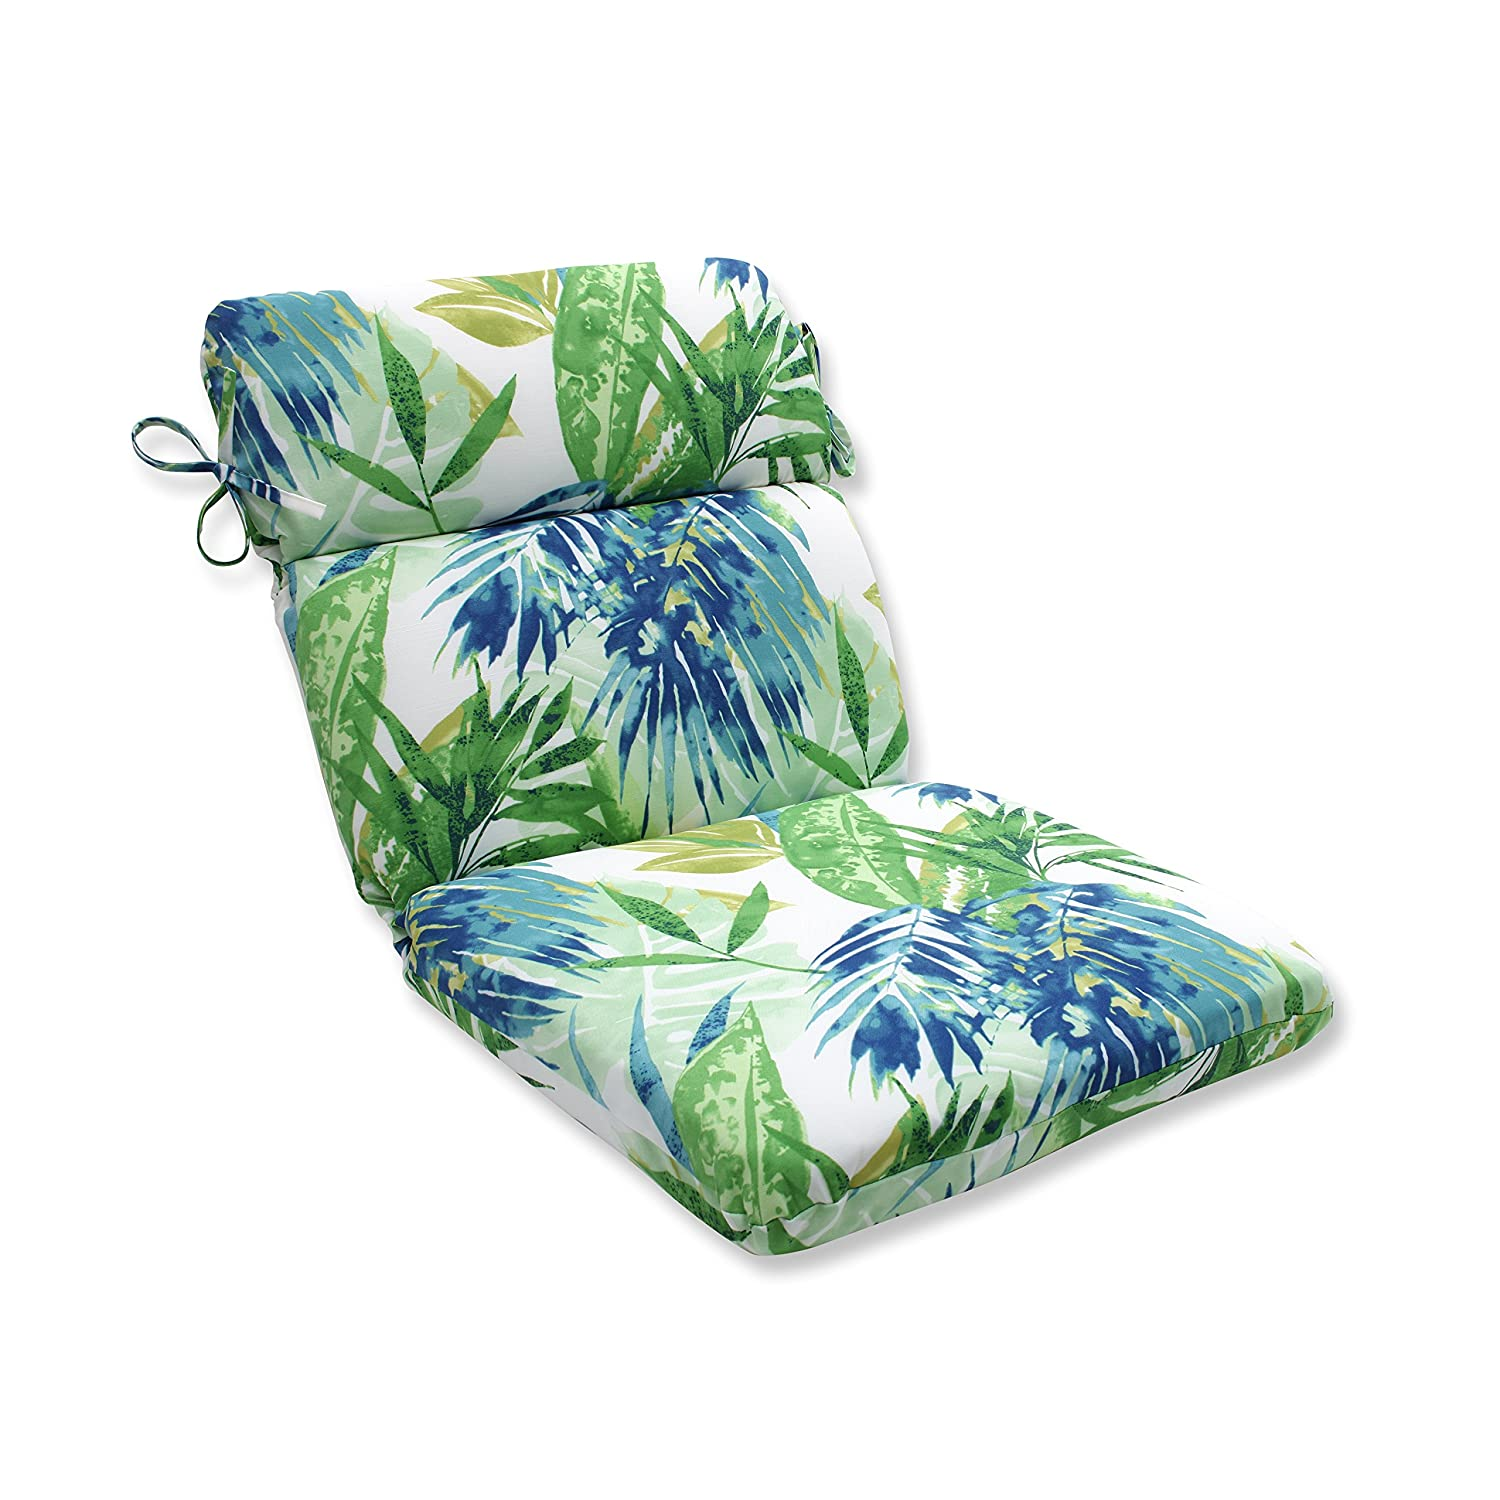 Pillow Perfect Outdoor Indoor Soleil Rounded Corners Chair Cushion, Blue Green